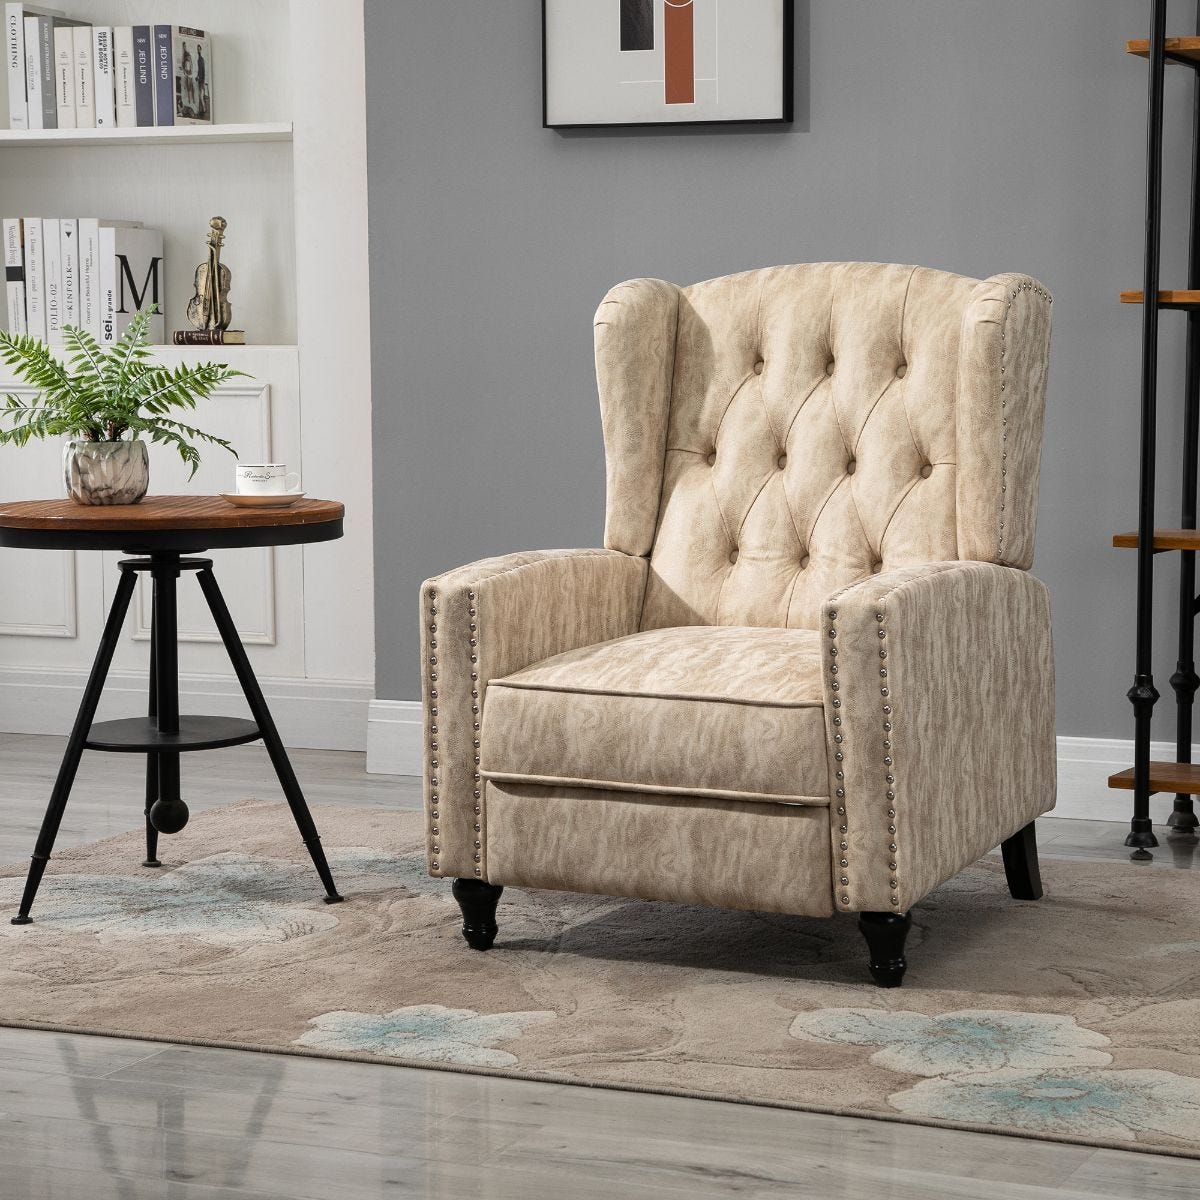 Marble Effect Manual Reclining Armchair With Footrest Studs Wood Legs Beige